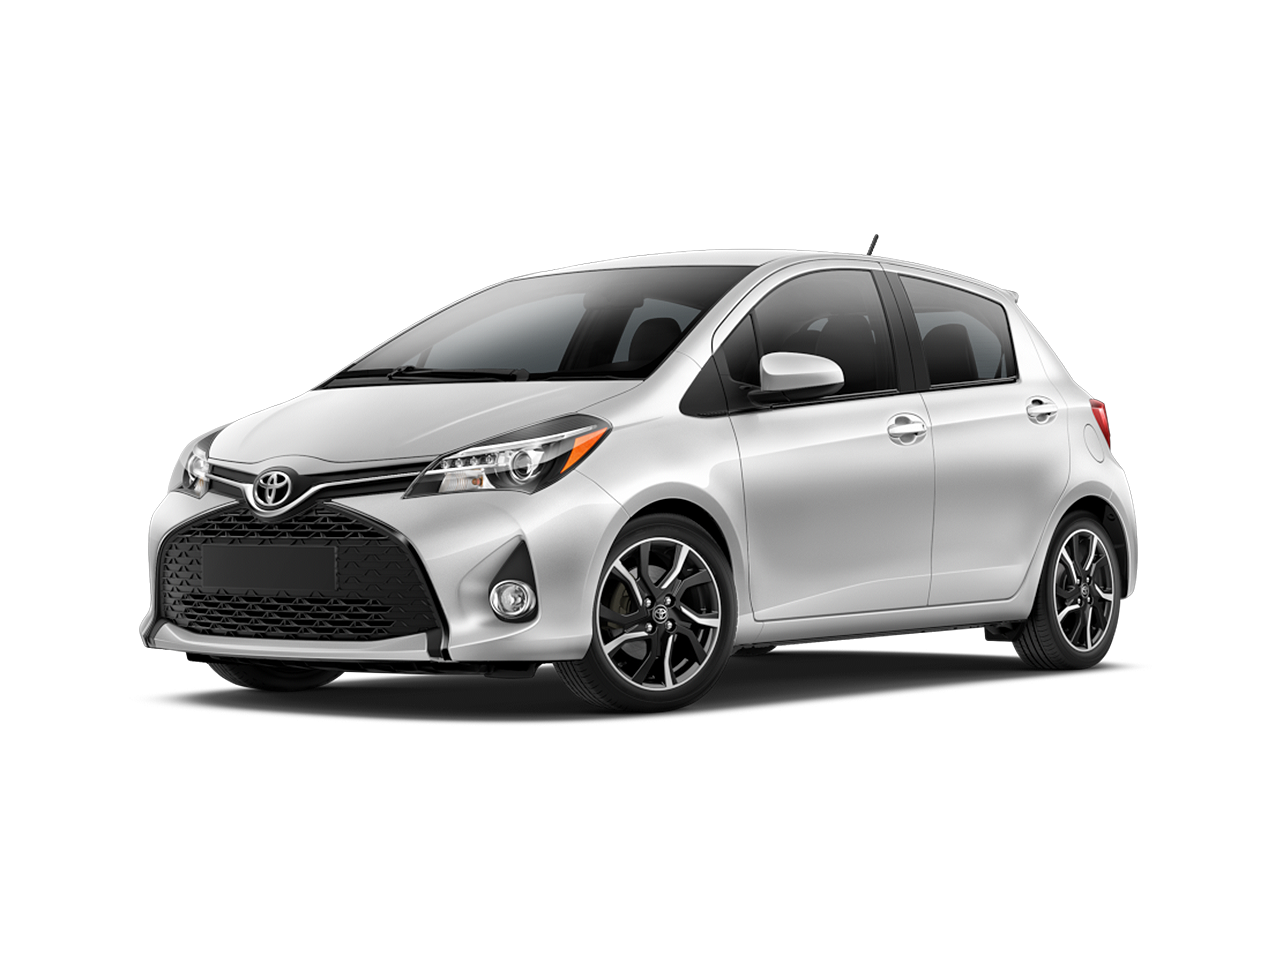 Test Drive A 2017 Toyota Yaris at Madera Toyota in Madera